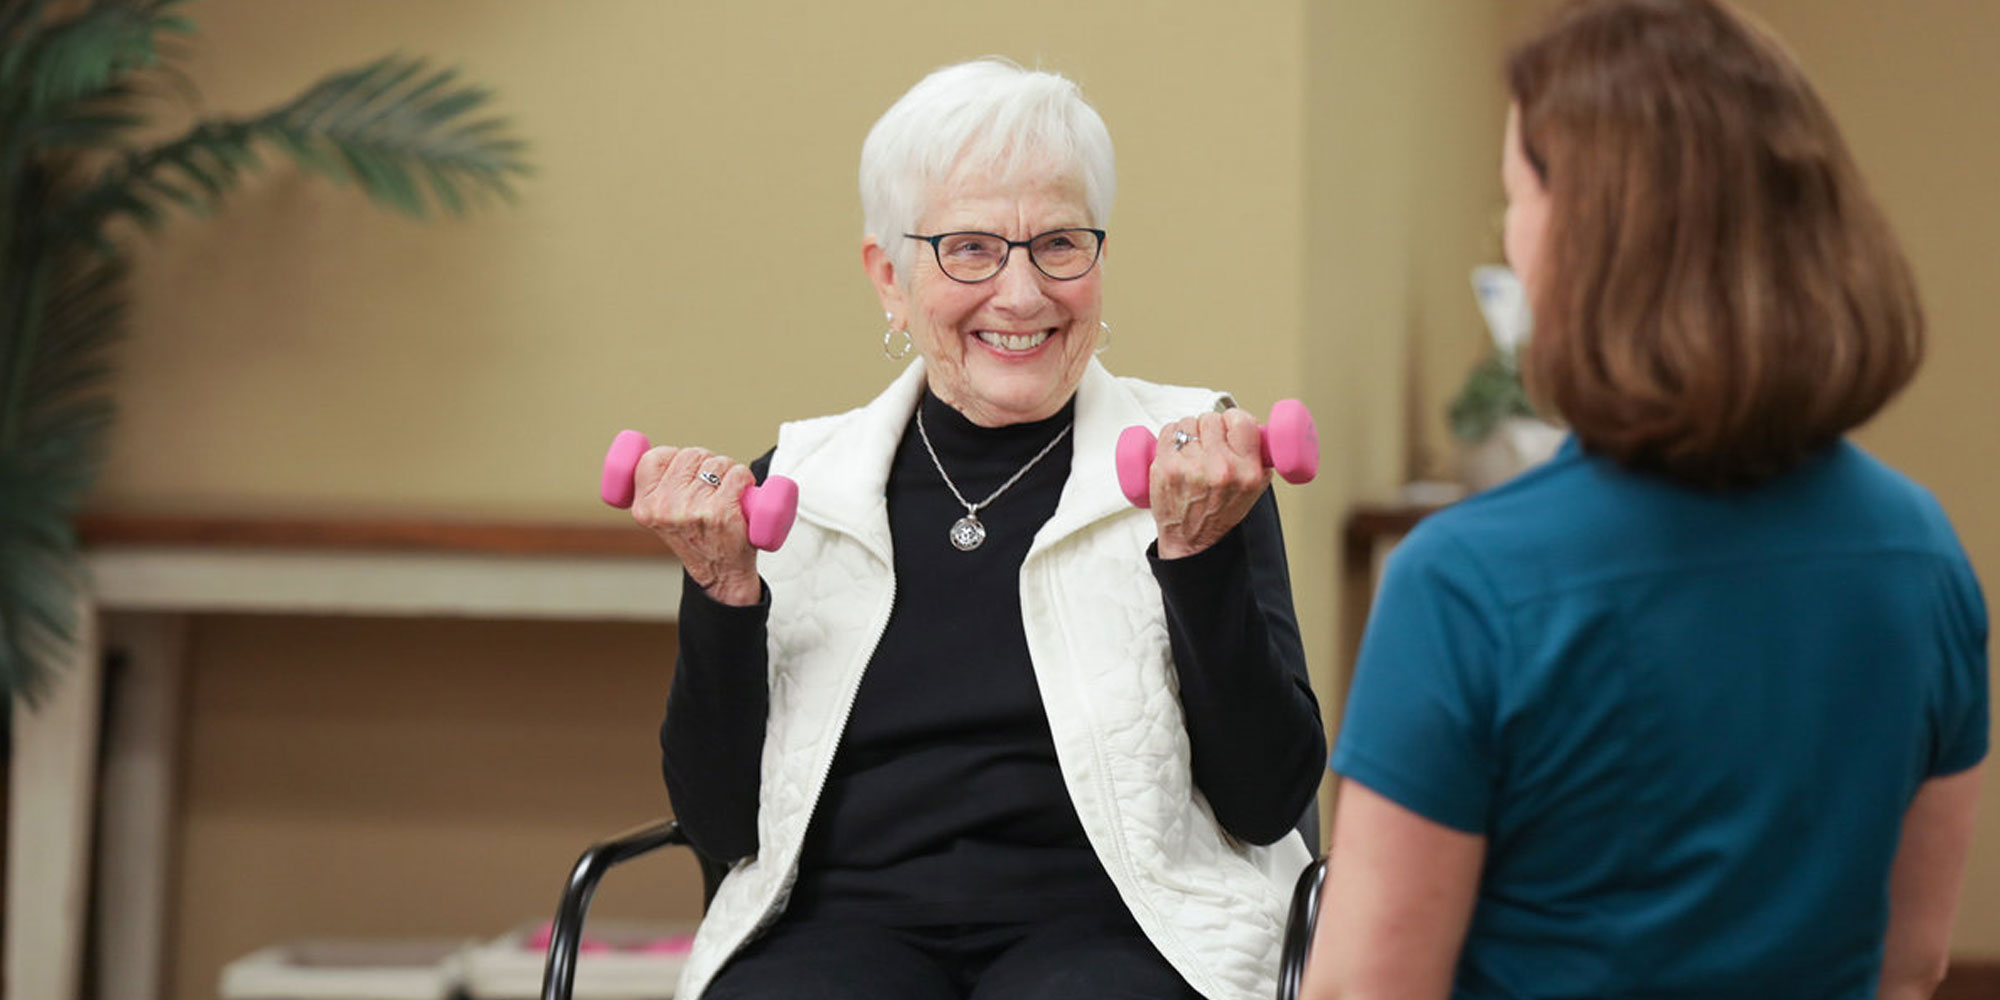 Heritage OnCare Physical Therapist assisting elderly woman with her exercises